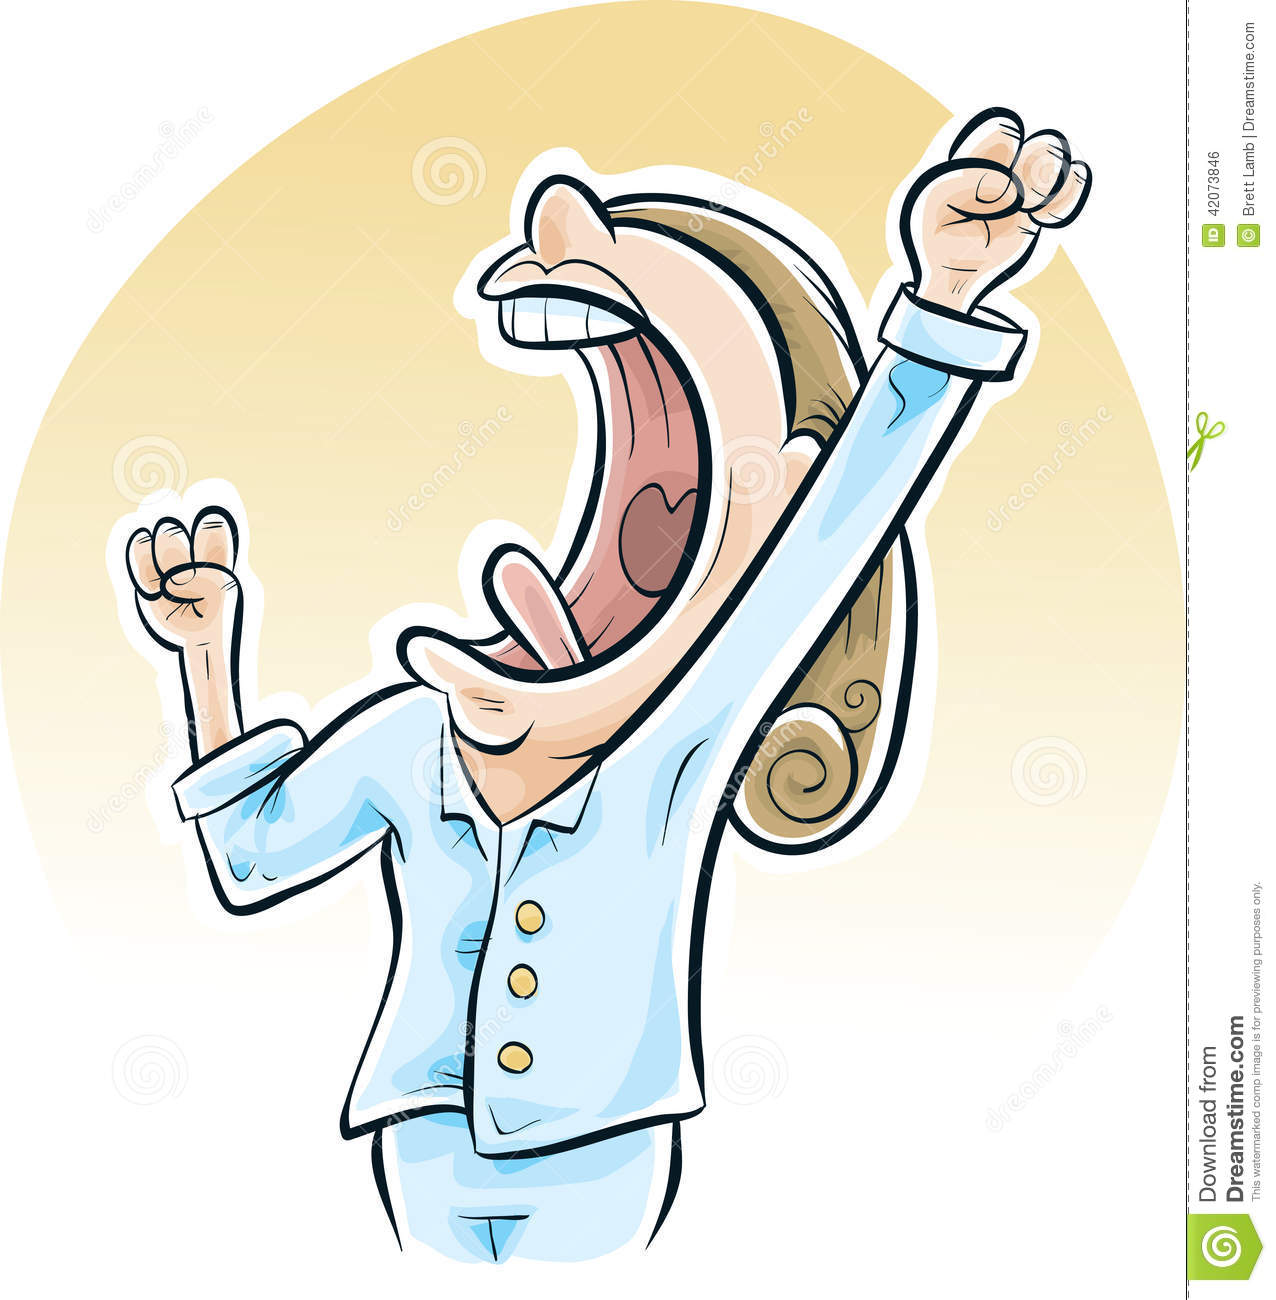 Yawn Stock Illustrations 2 203 Yawn Stock Illustrations Vectors Clipart Dreamstime